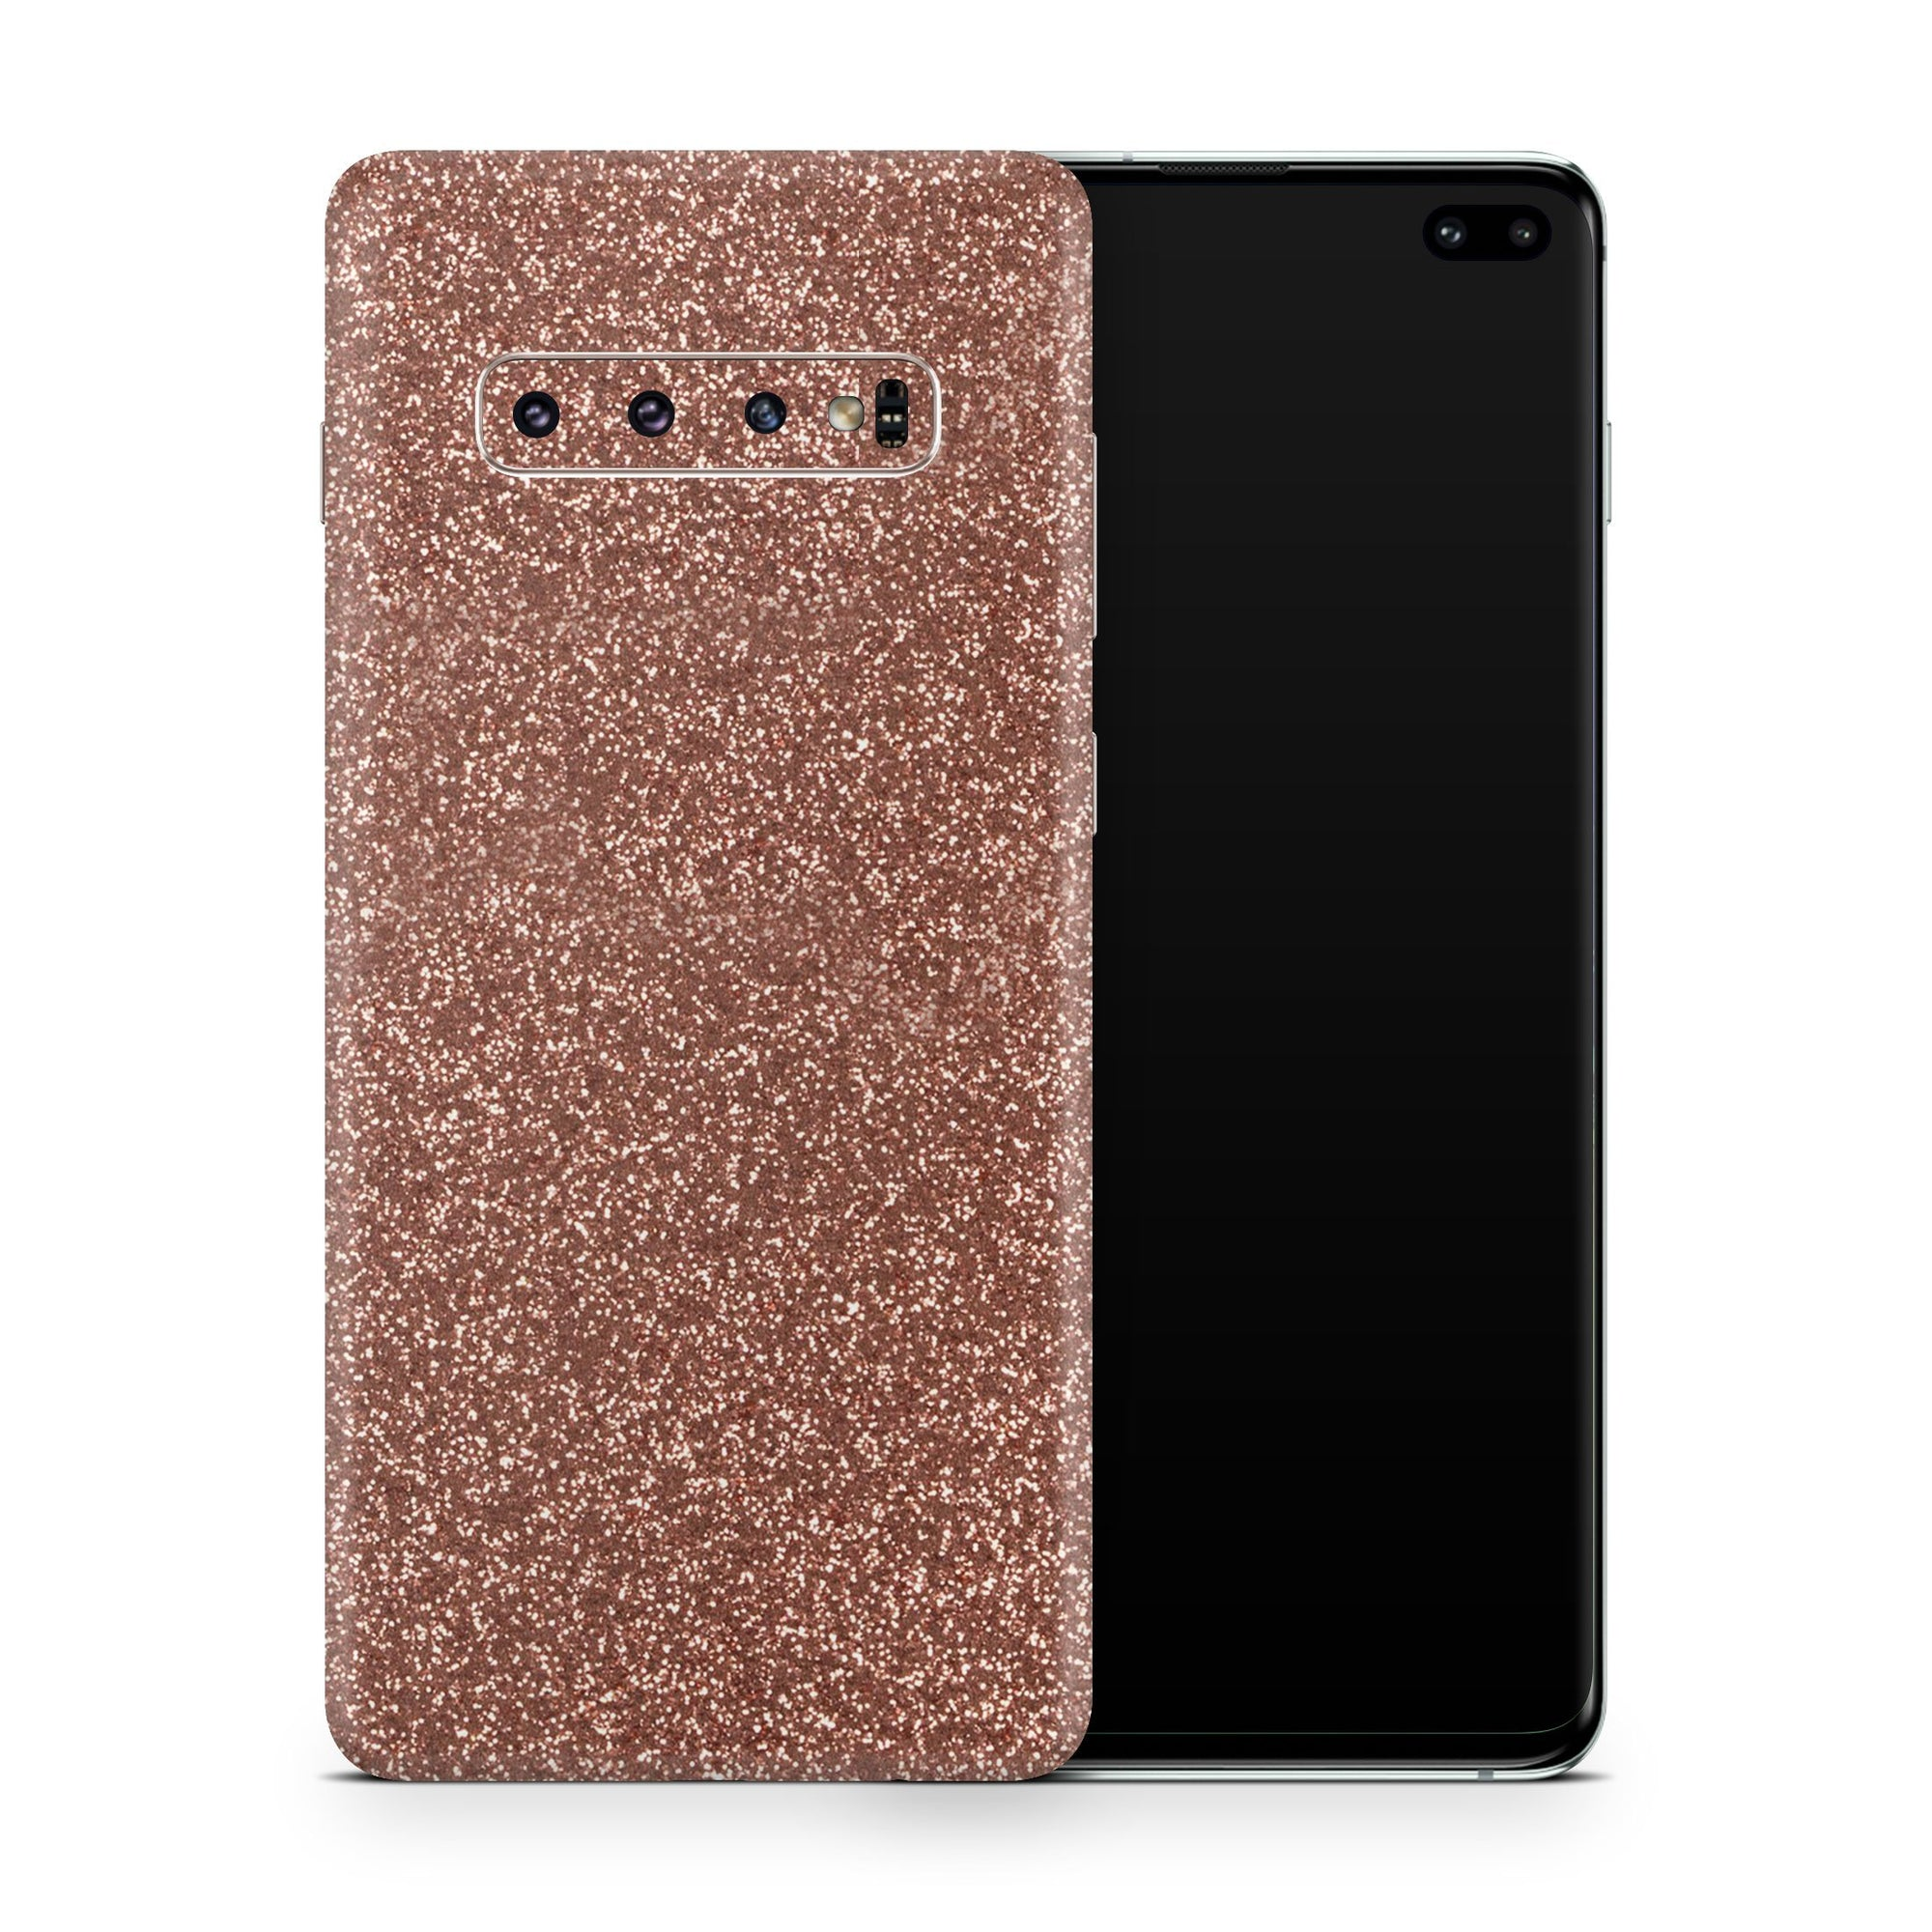 Sparkly S10 Plus Wrap